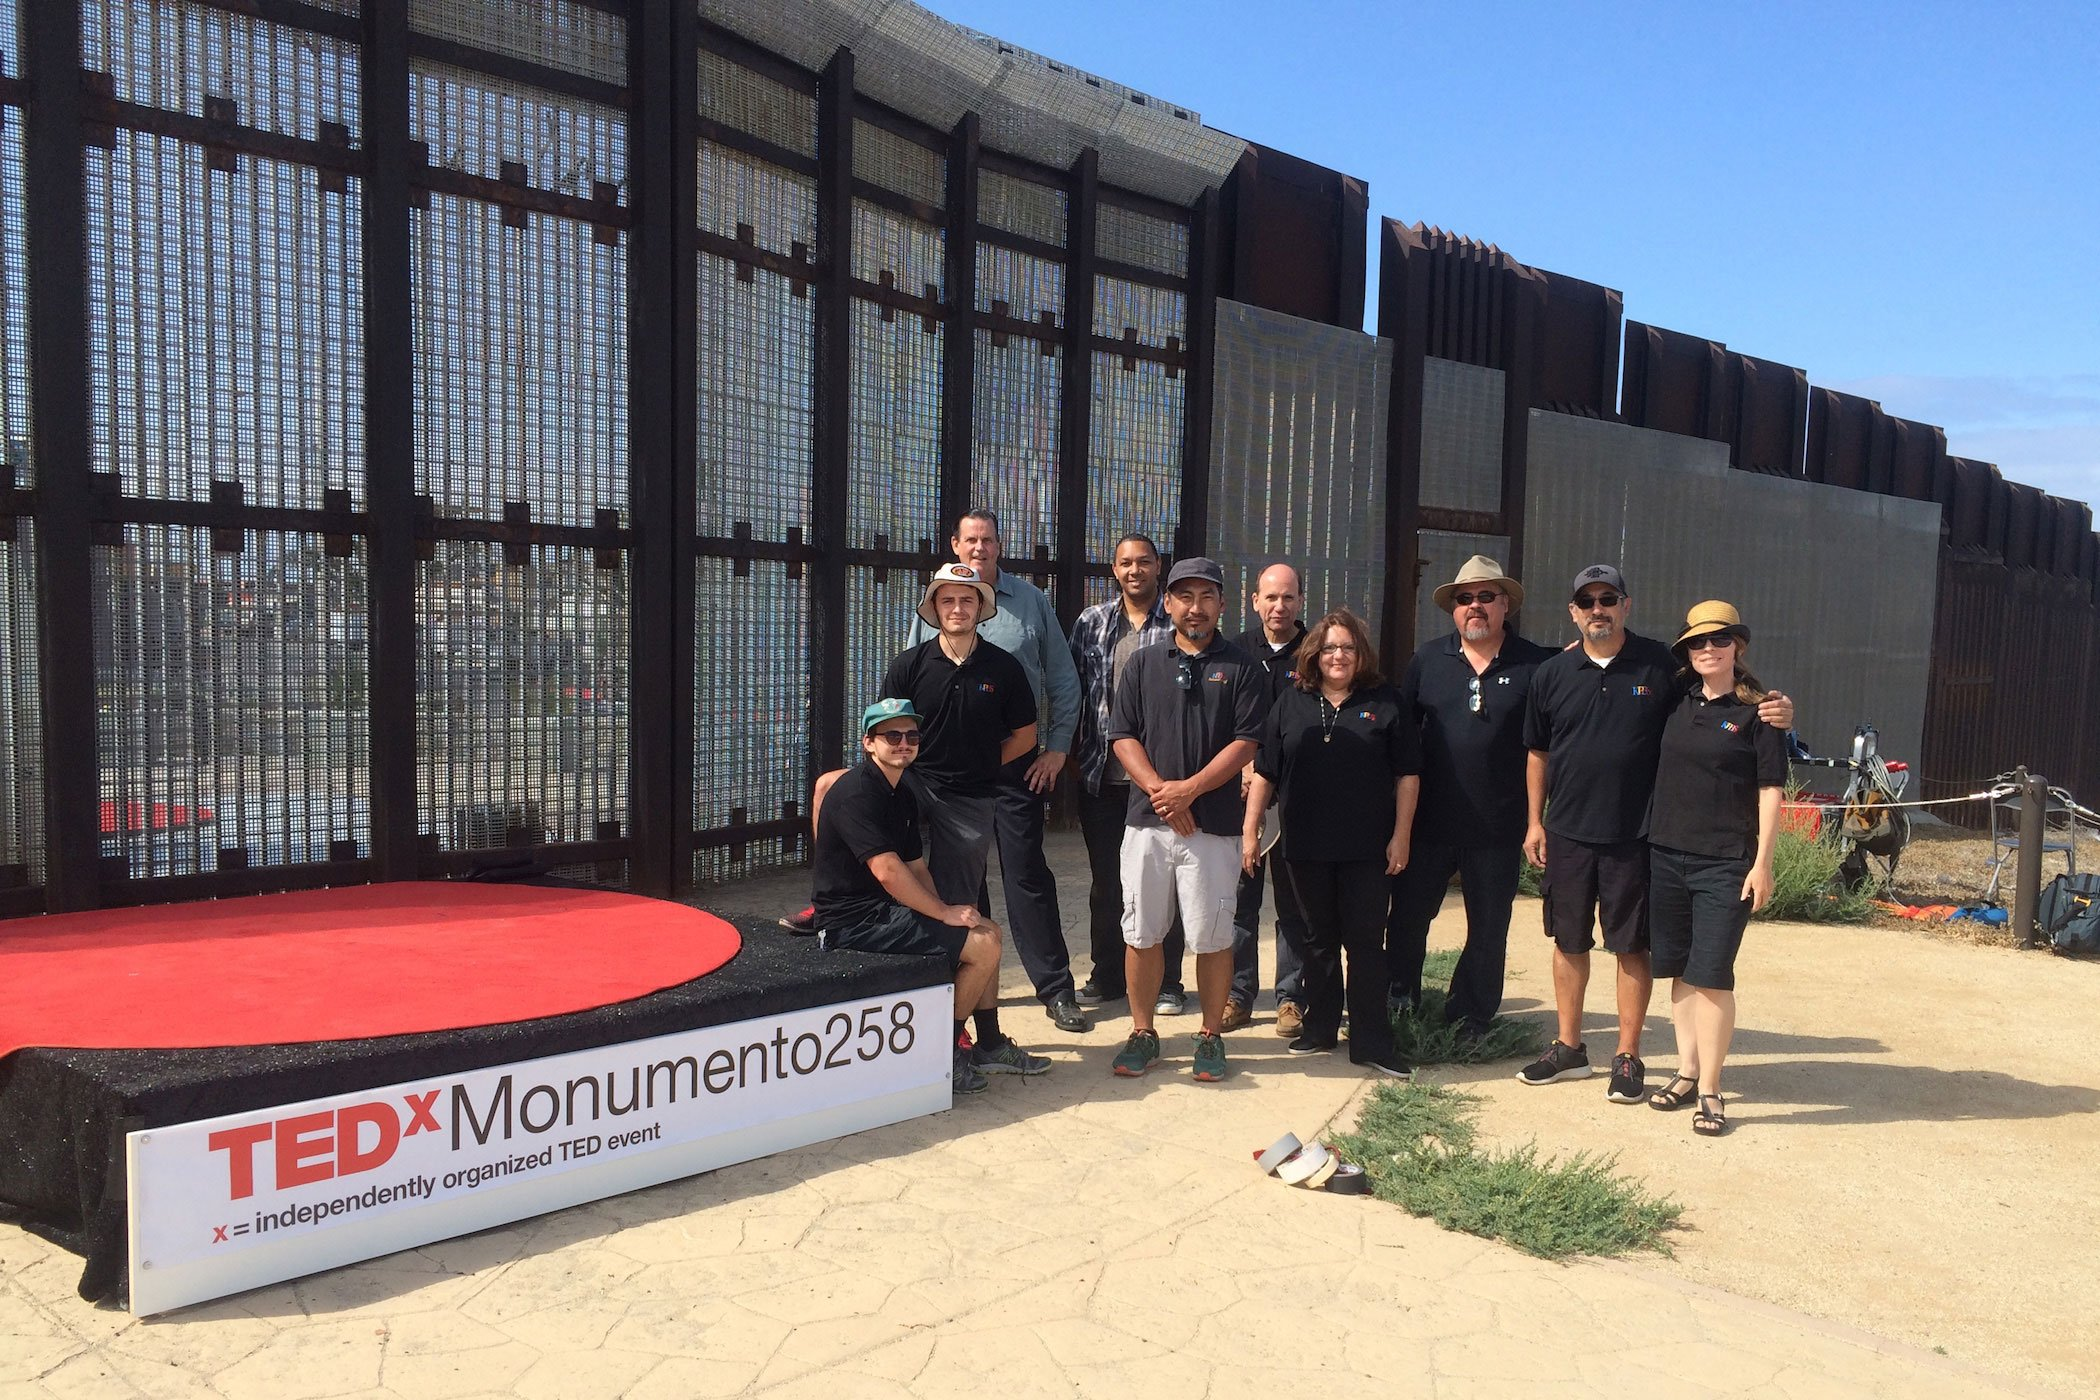 KPBS Show Team at TEDxMonumento258